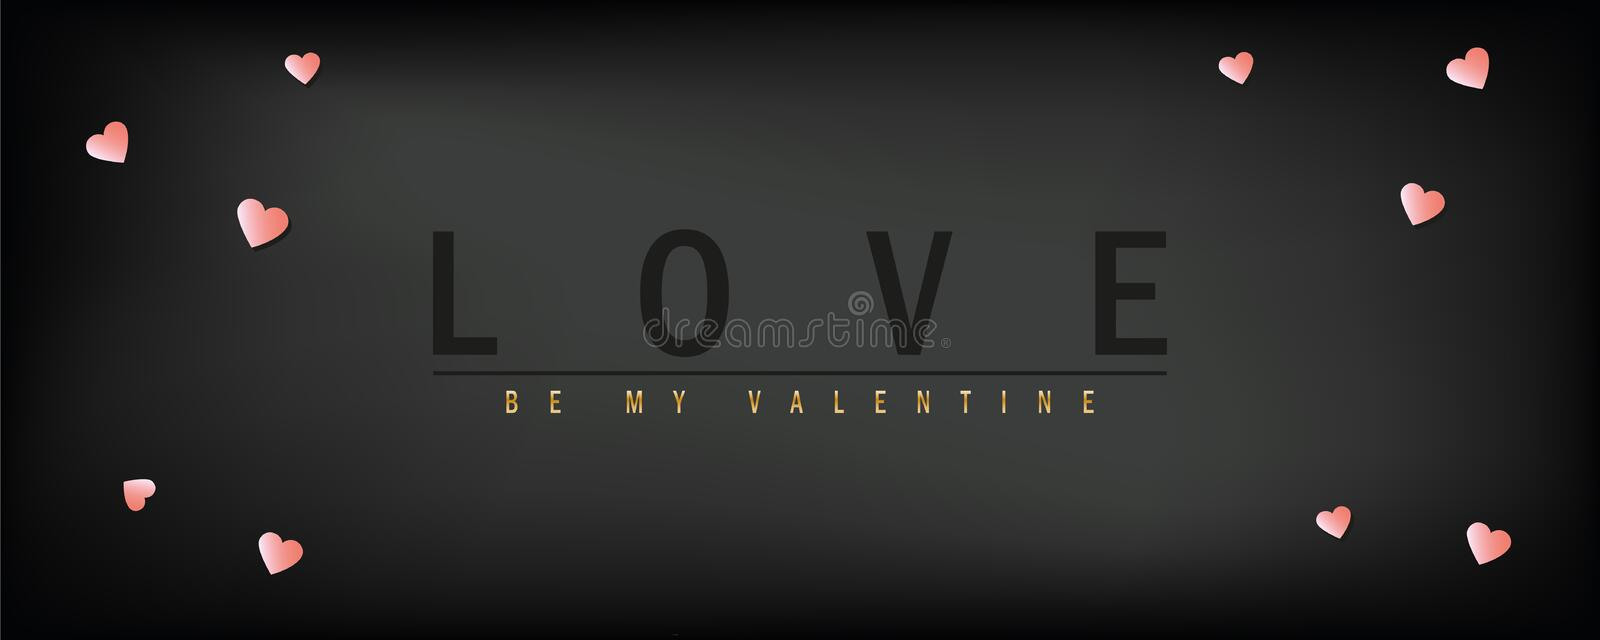 Love valentines day dark greeting card with typography and heart vector illustration